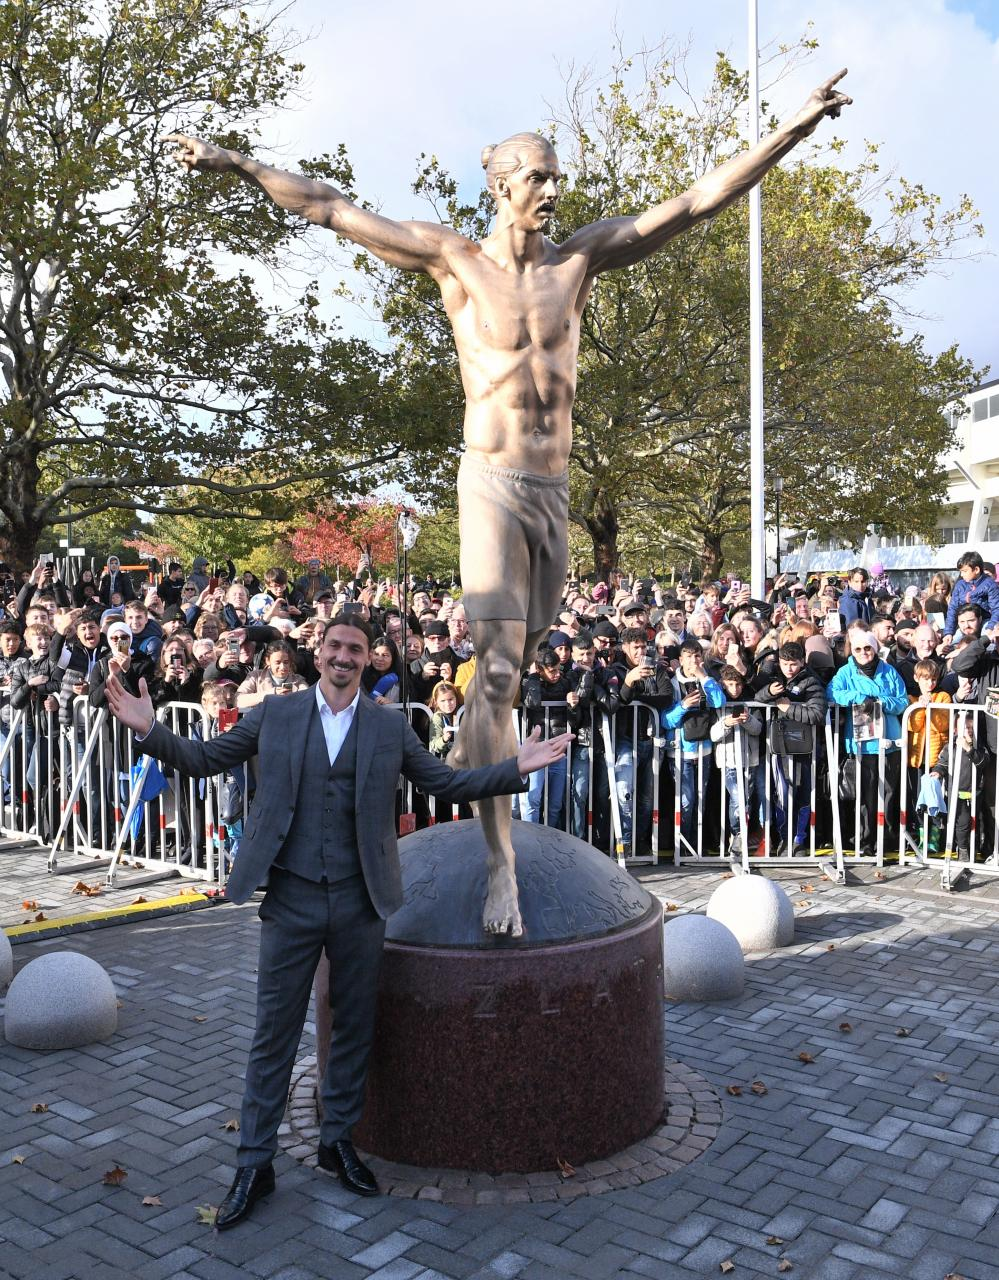 The giant statue was only installed by Malmo last month as a tribute to their former player